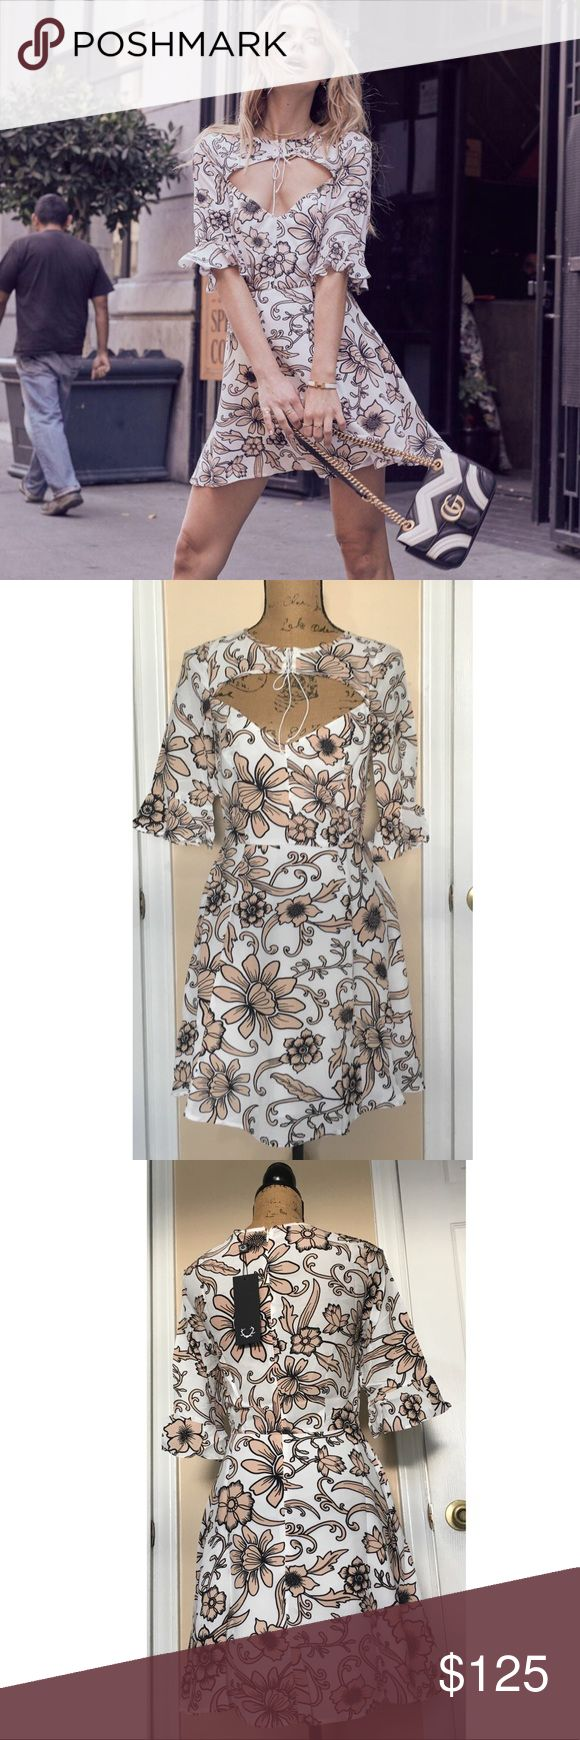 """✨🎀BF SALE🎀 For Love & Lemons Ayla Laced-Up Dress For Love & Lemons Ayla Laced-Up Floral Print Mini Dress features an open neckline with lace-up details, elbow length sleeves with ruffle detail, flared flowing skirt and hidden back zipper. Lined. -Length is about 32"""". Measured size Small.  -Fabric: Rayon/Viscose/Polyester/Spandex Care: Dry clean For Love And Lemons Dresses"""